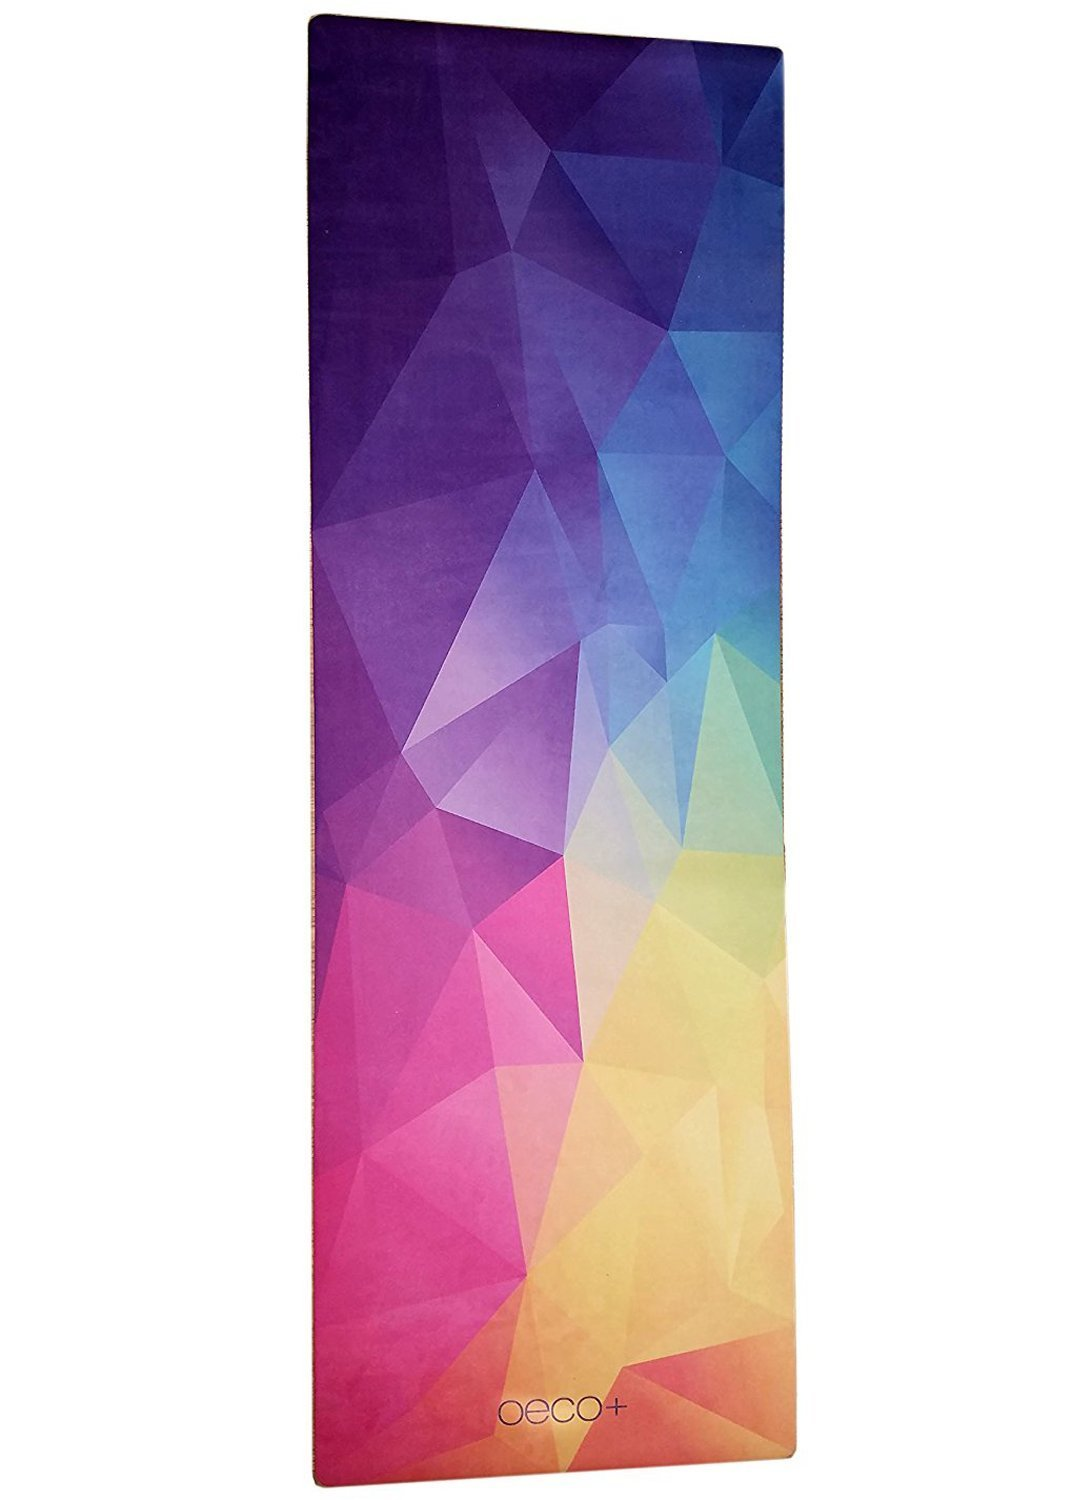 Oeco Plus Printed 1.5mm Yoga Mat, Prana Yoga Mat, Bikram Yoga Mat – Incredibly Comfortable Yoga Mats for Men and Women - Gorgeous Microfiber Printed Designs